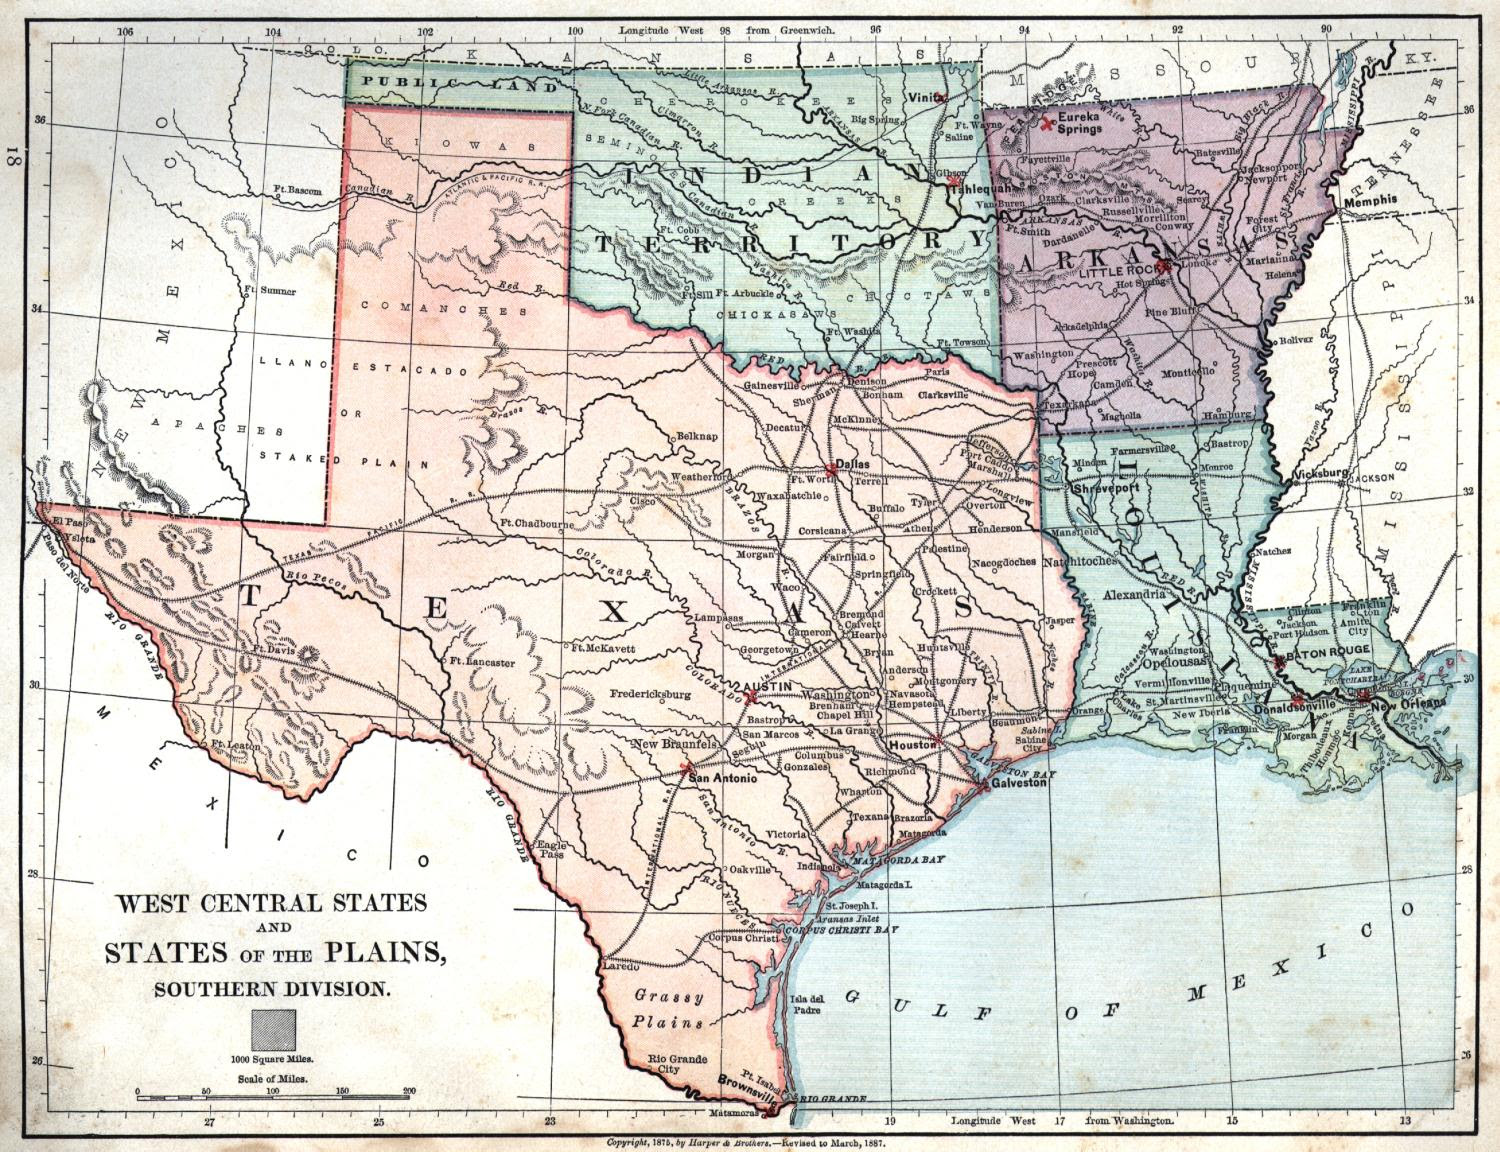 Map Of Texas And Louisiana Border.Map Of Texas And Louisiana Together Map Of Us Western States